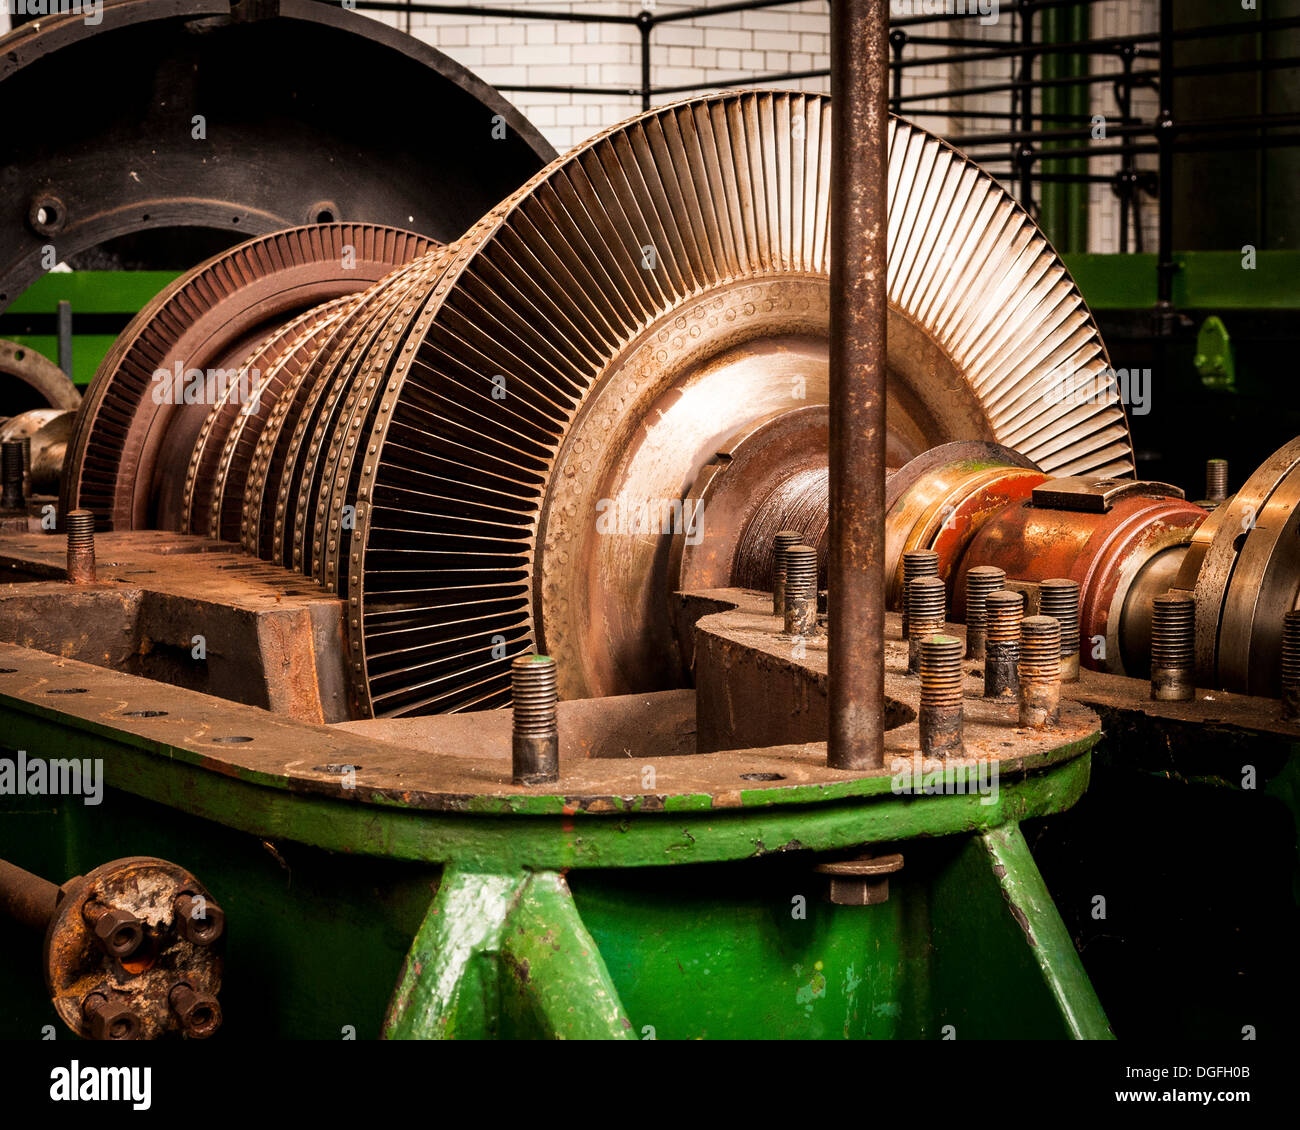 Kempton Park Waterworks, Kempton Park, United Kingdom. Architect: unknown, 1929. Lateral view of turbine. Stock Photo